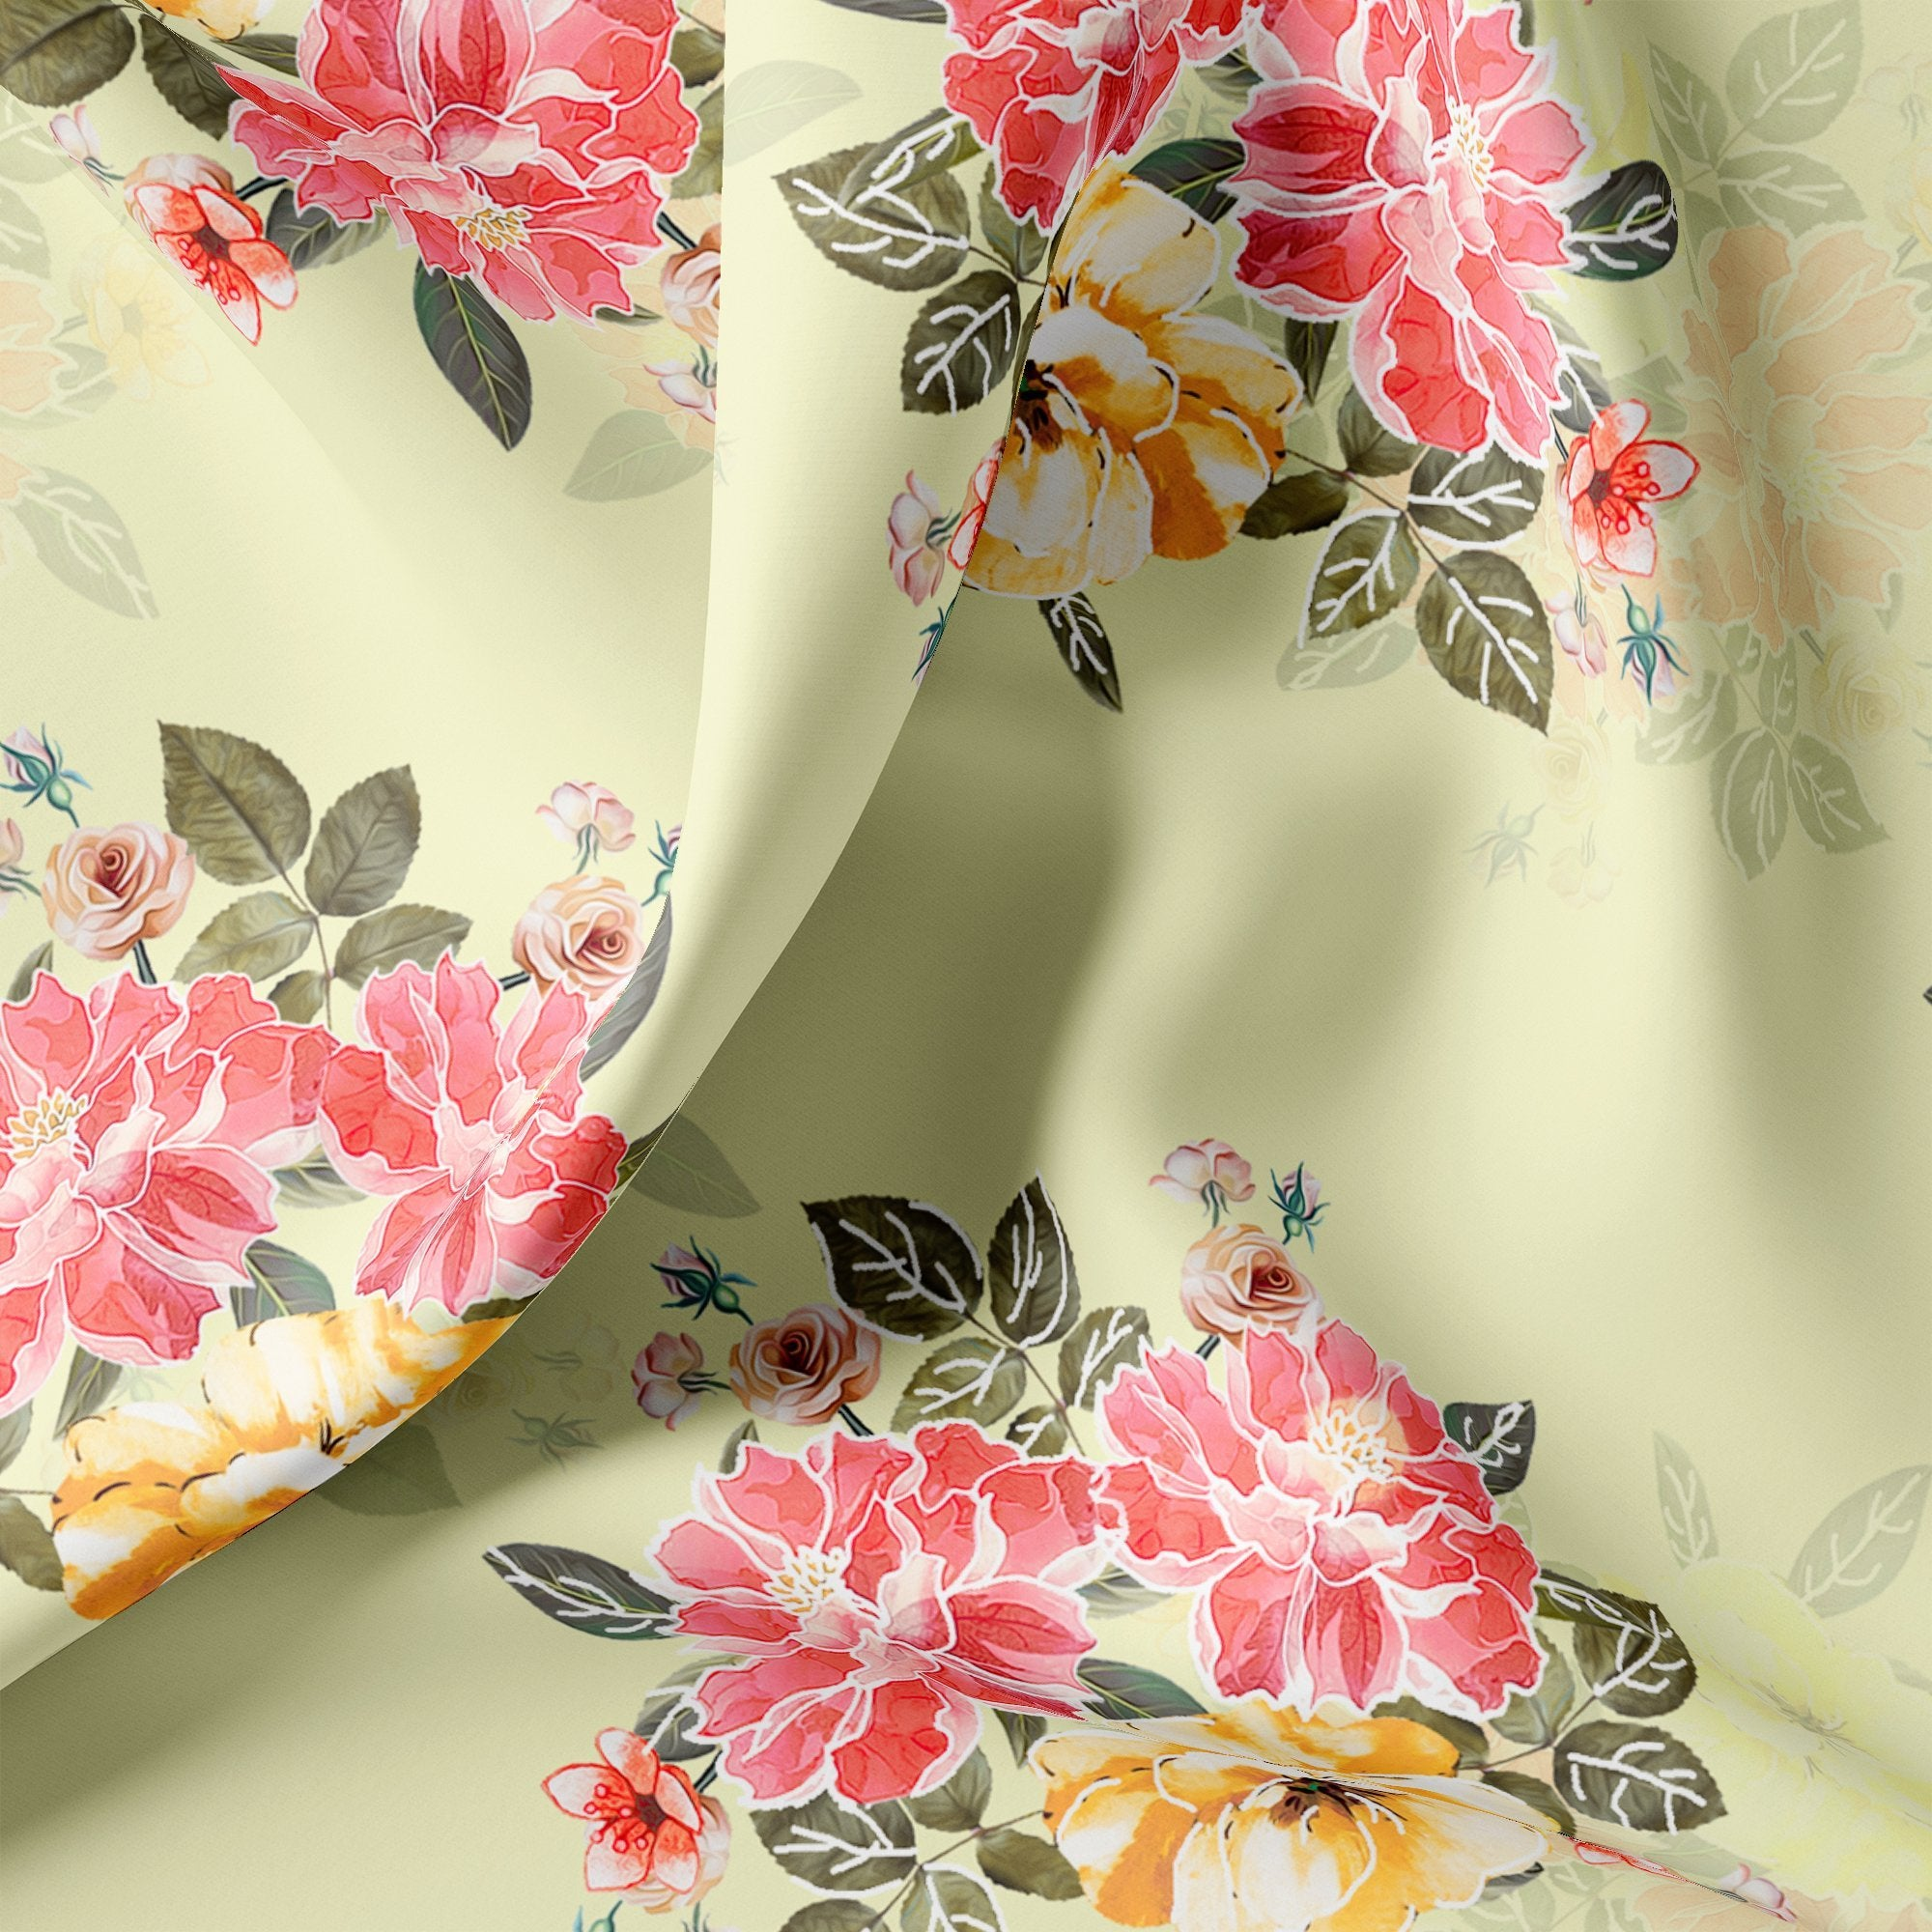 Colorful Floral Yellow Base Digital Printed Fabric - FAB VOGUE Studio. Shop Fabric @ www.fabvoguestudio.com